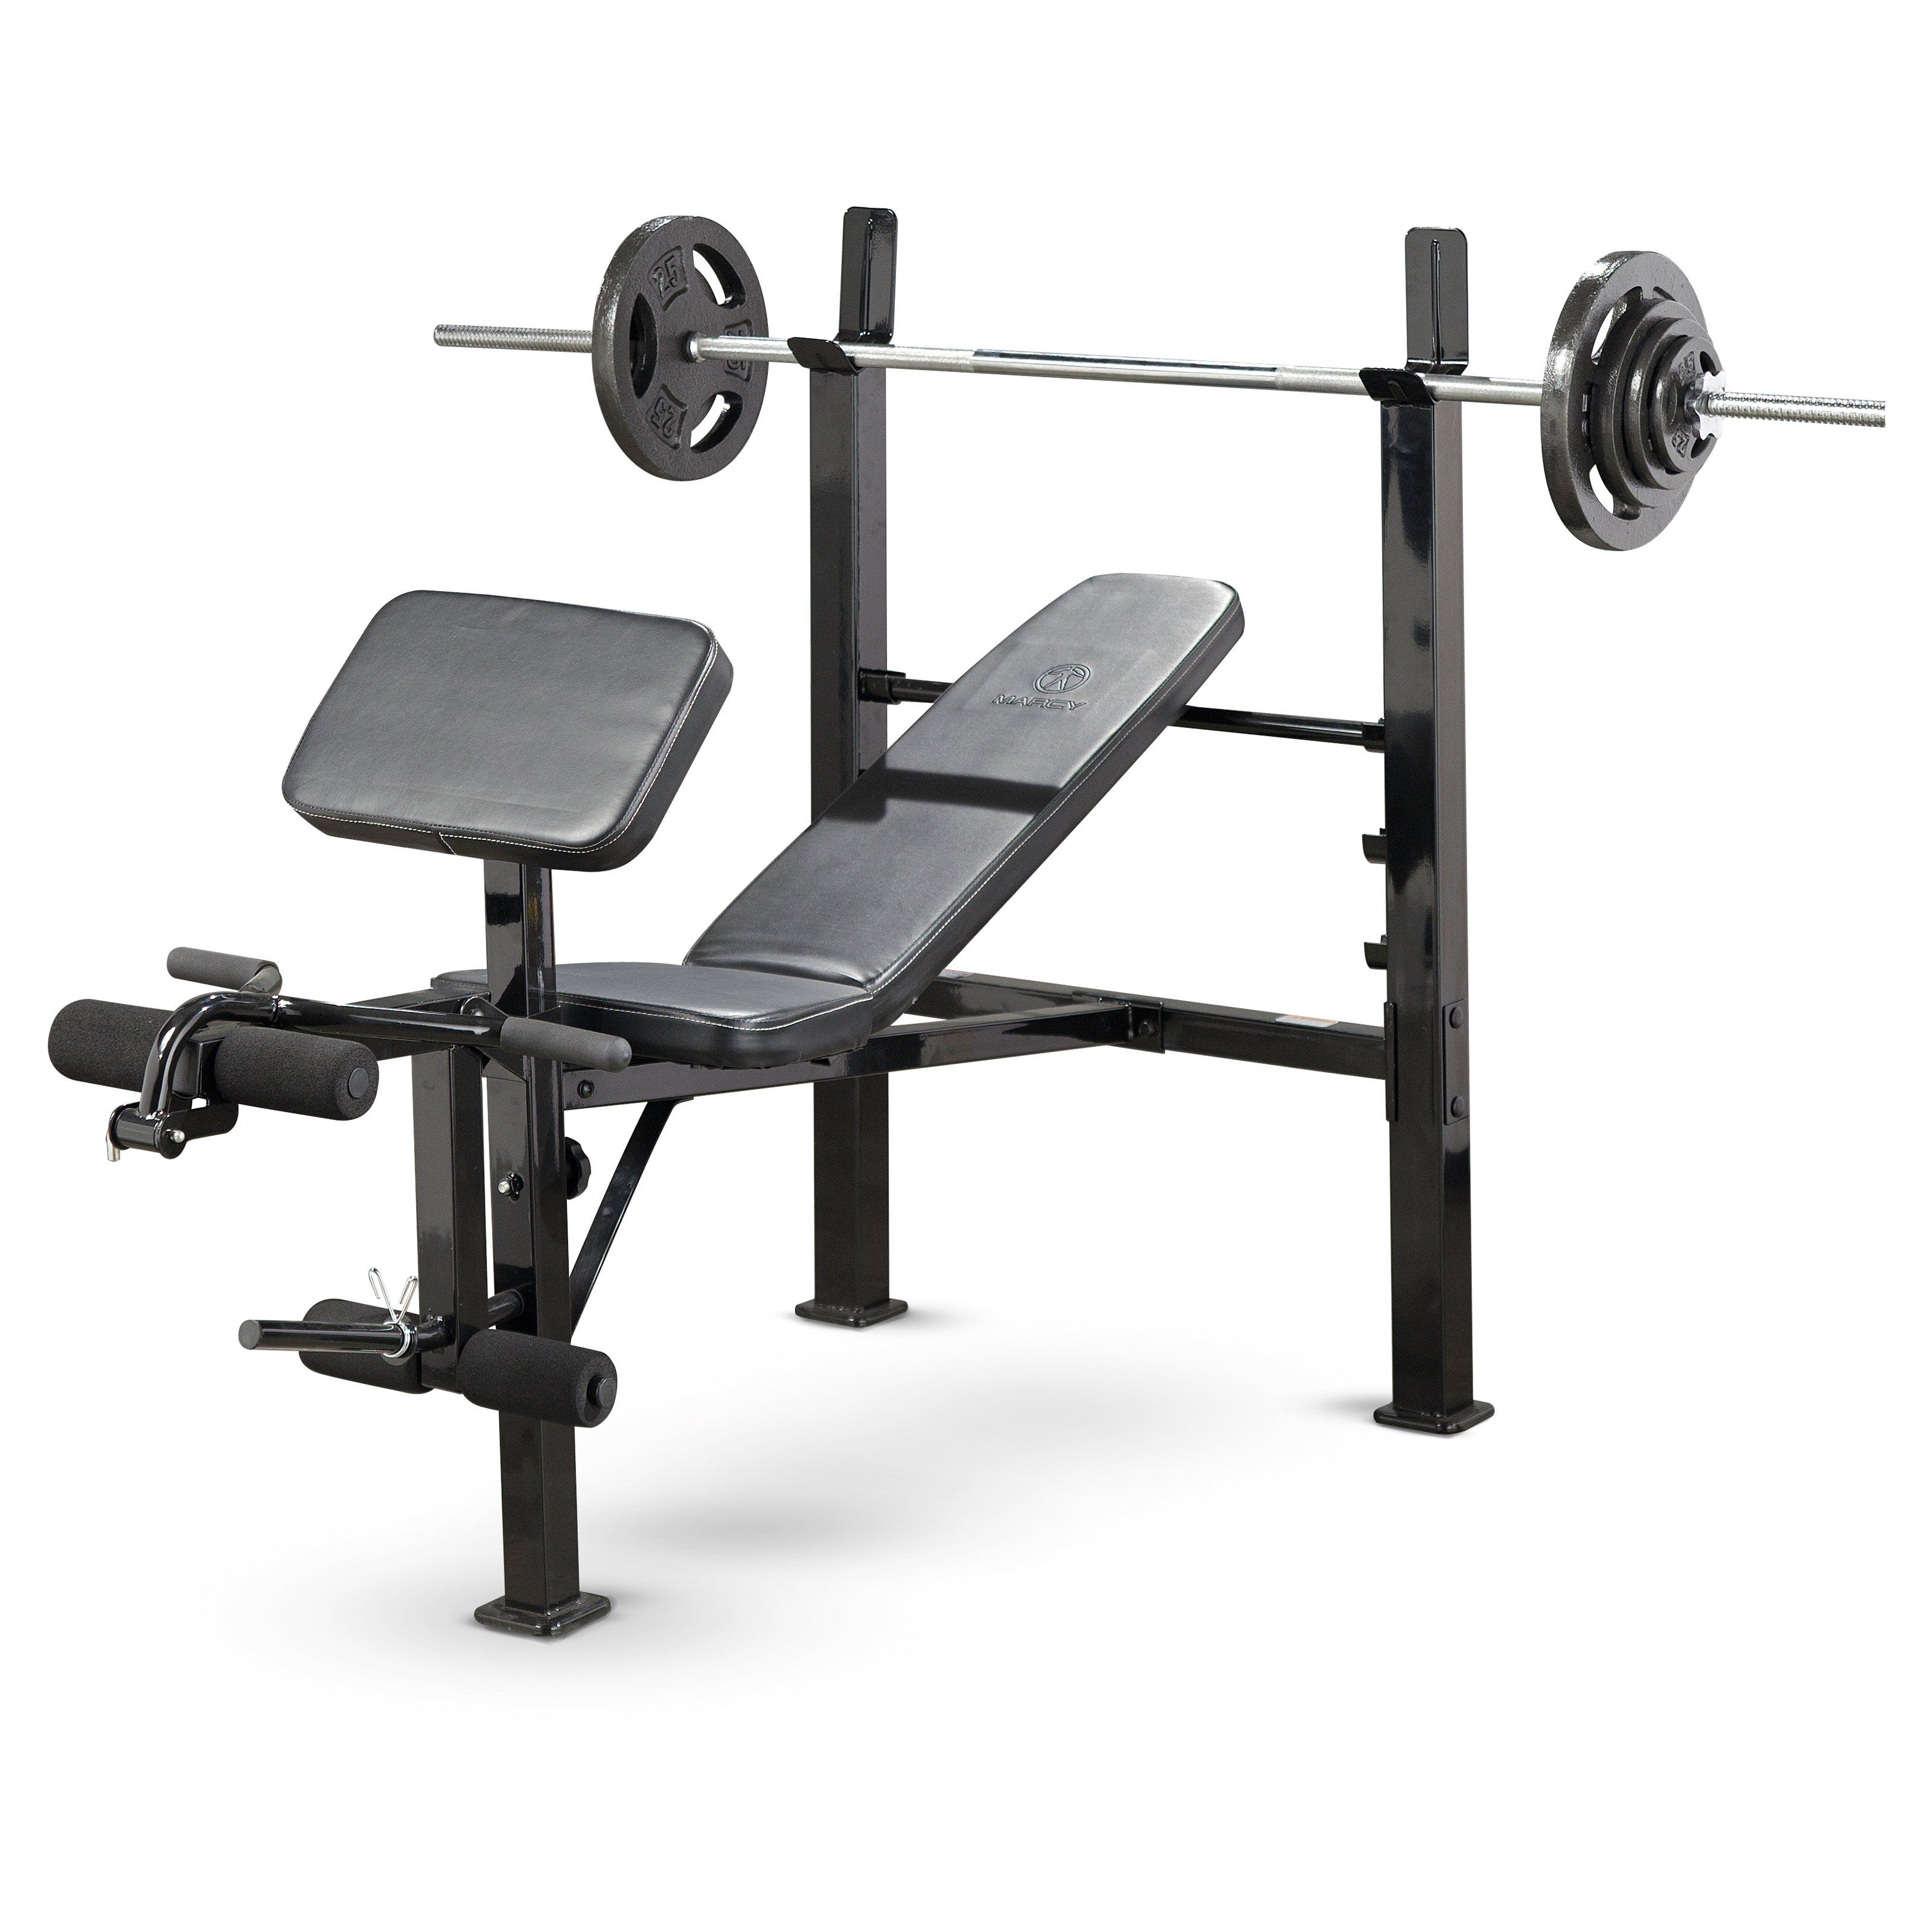 cheap with bench used press lifting sale size gym ideas standard for workout sport best exercise complete weight small full set adjustable powerhouse weights tools benches of bar